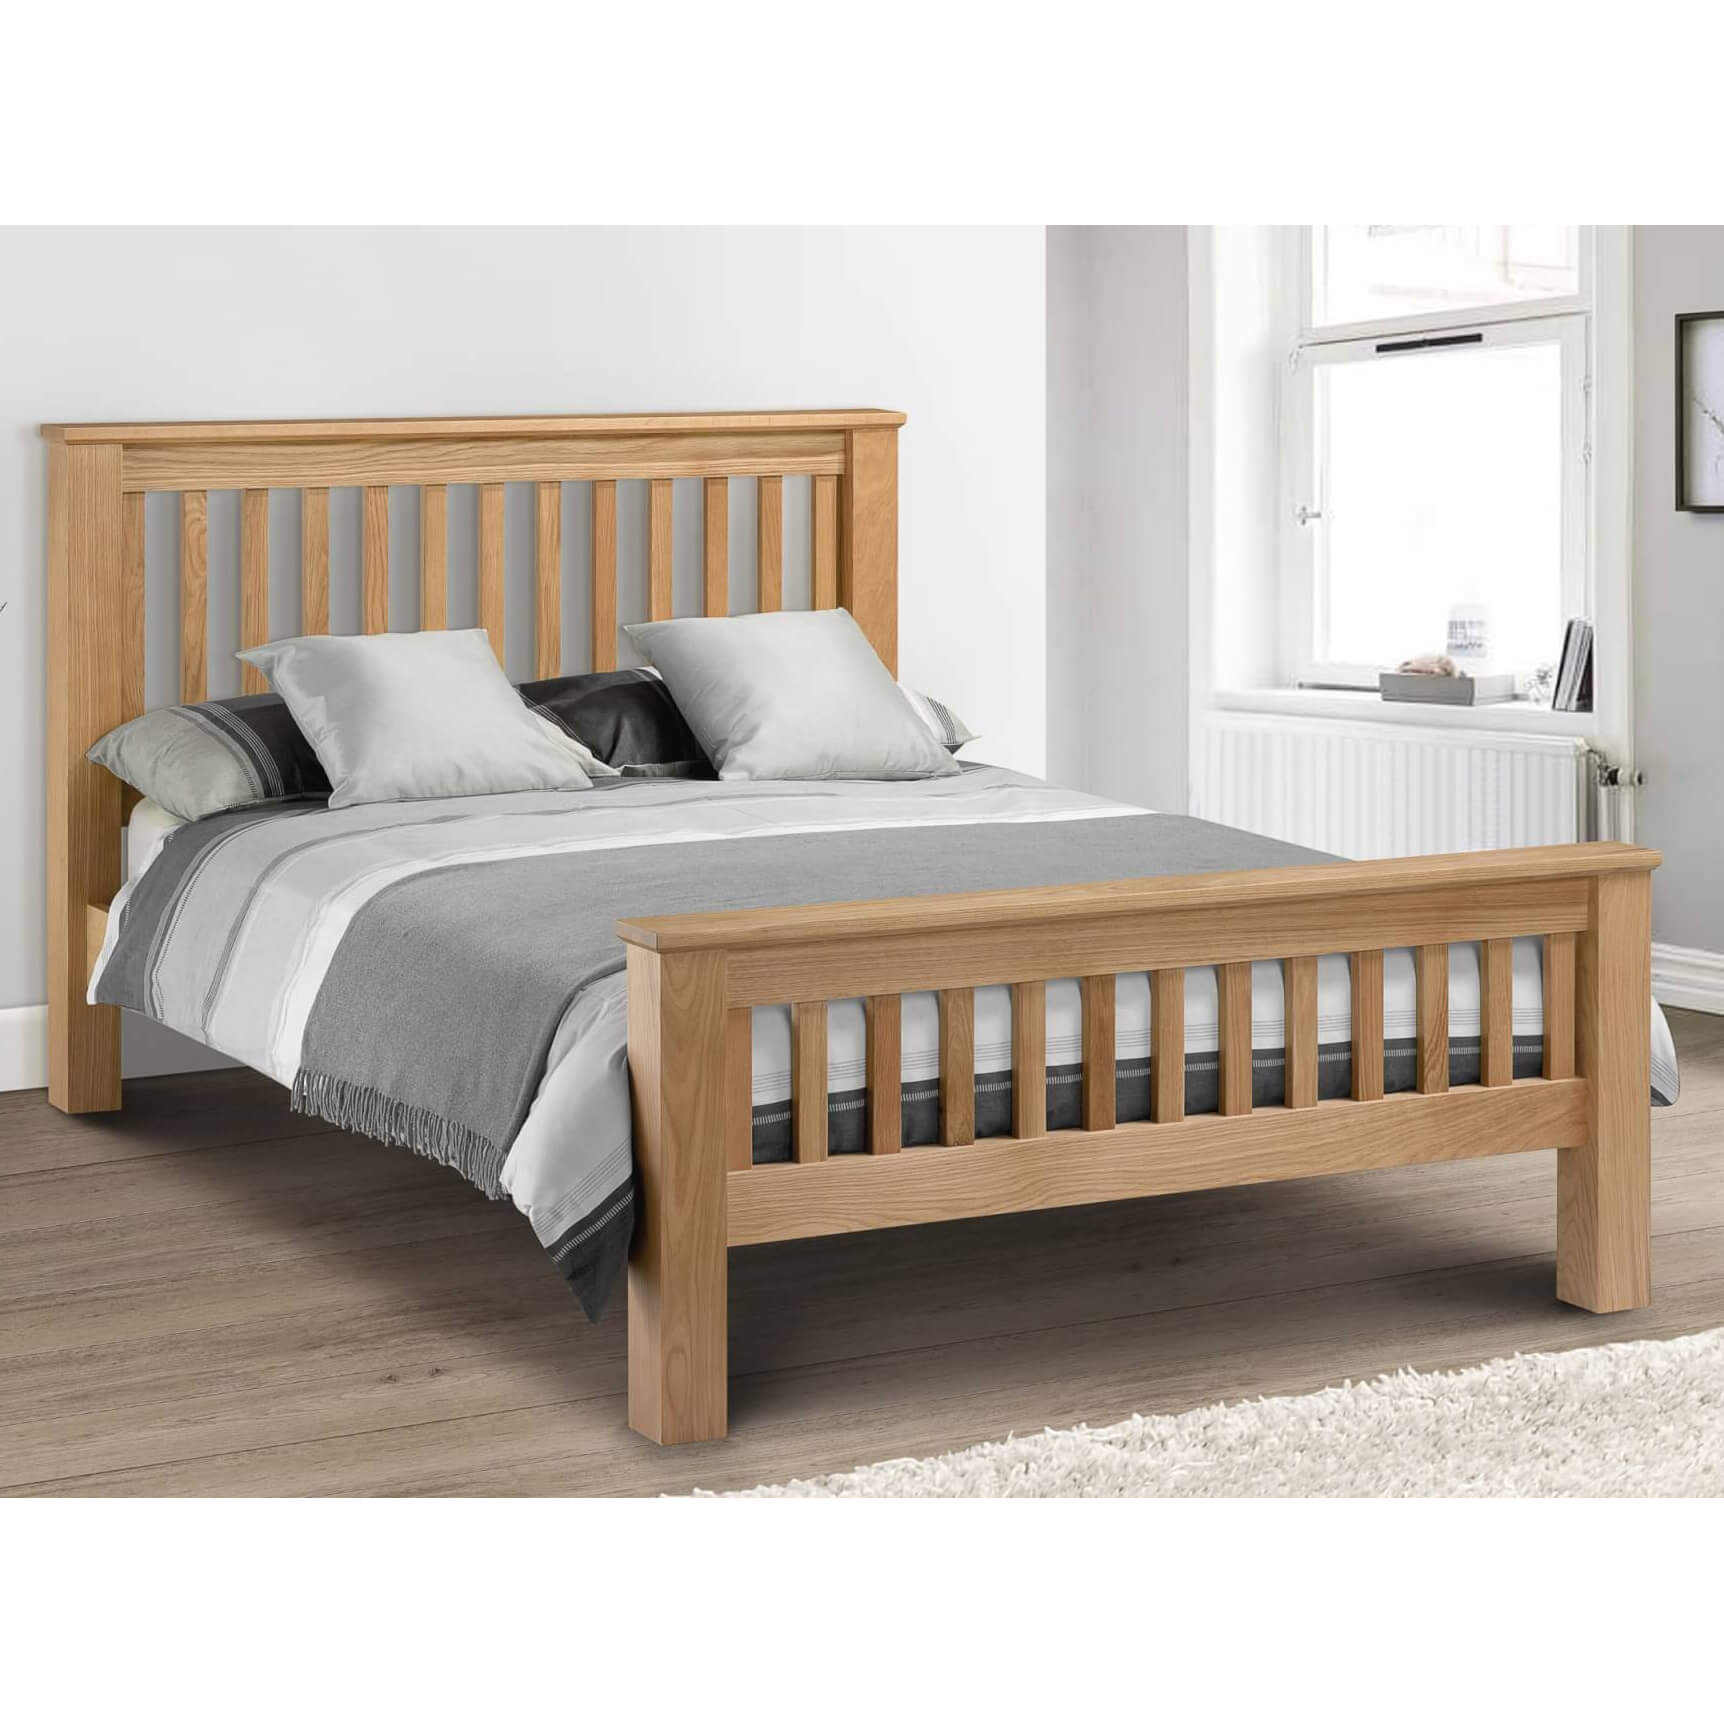 Hadley High Footend Wooden Bed Frame Bedknobs